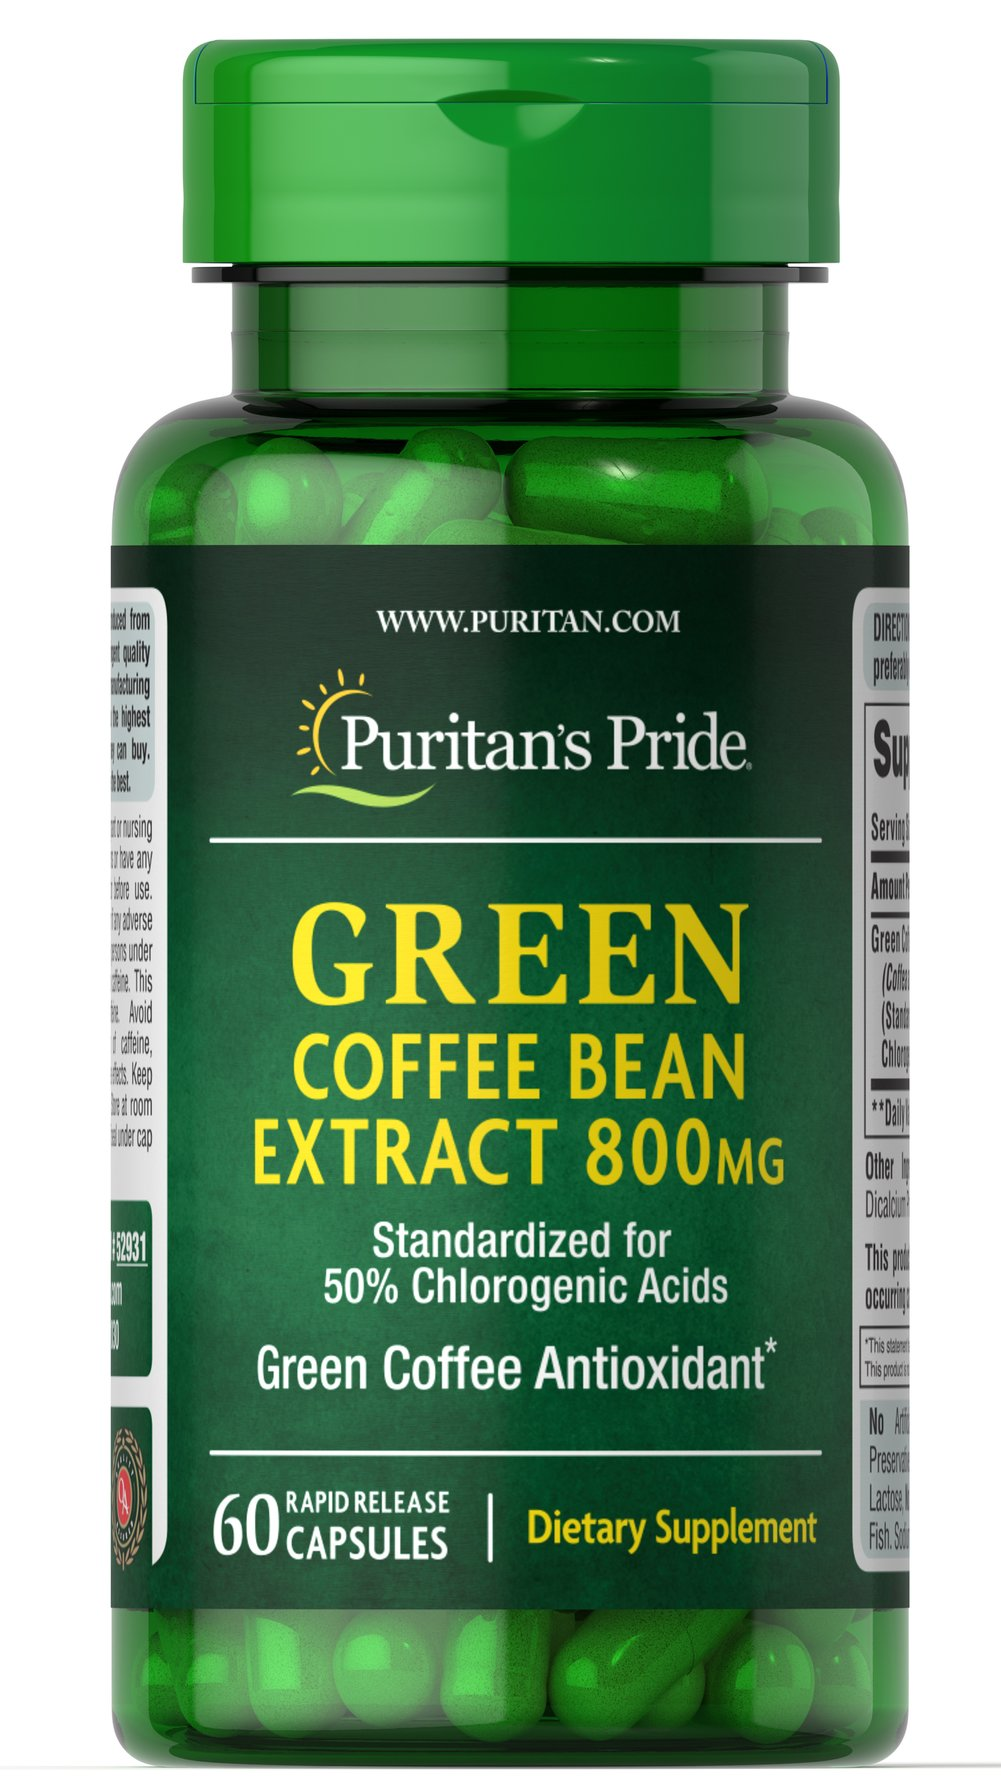 Green Coffee Bean Extract 800 mg Thumbnail Alternate Bottle View